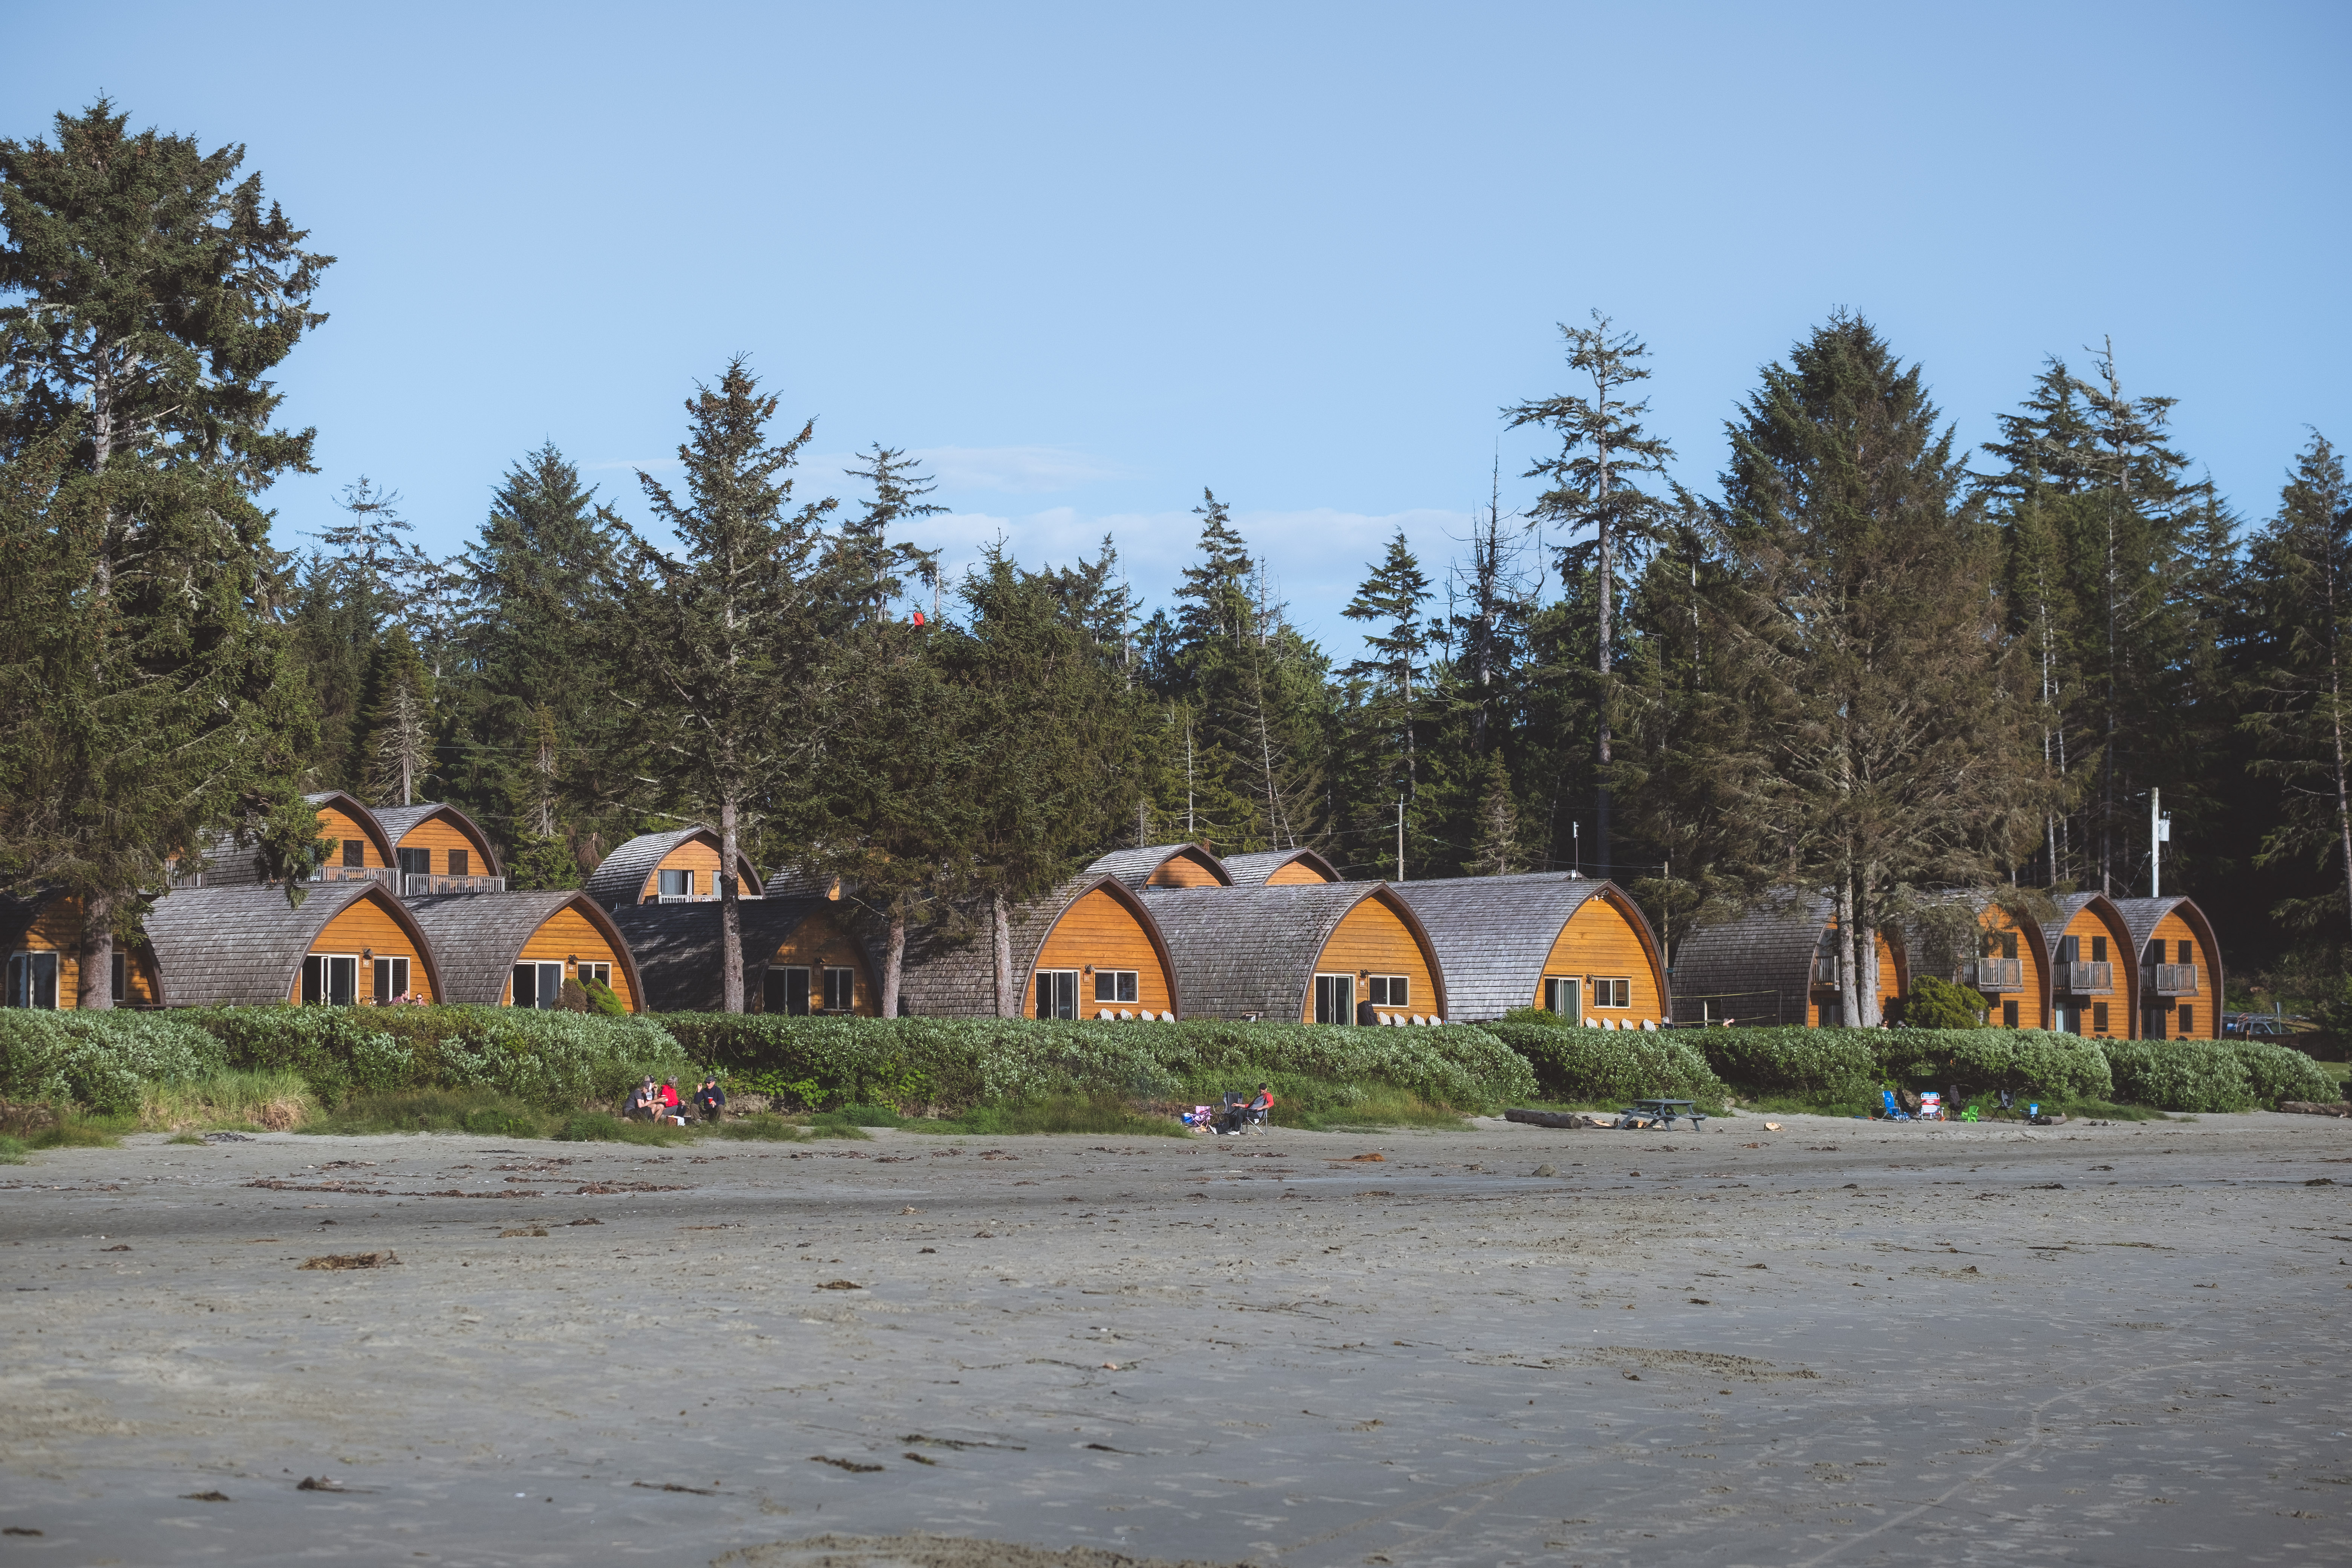 "Sporting a variety of charming ""beehive"" cedar cabins originally built in 1976, Ocean Village Resort offers patrons an affordable option to experience Tofino's gorgeous coastlines. Located right on Mackenzie Beach, enjoy panoramic views of the ocean while you soak up a sunset by a beach fire, or get out on the water for a paddle board or surf. Including amenities such as a heated pool and hot tub, an outdoor BBQ area, on-site surf shack, and access to a variety of fun and games for beach play, there is something to do for the whole family. Also, with a commitment to reducing their environmental footprint through on demand hot water systems and an extensive recycling and composting program, you can feel good about supporting a sustainable community. (Image: Ryan McBoyle / Seattle Refined){ }"